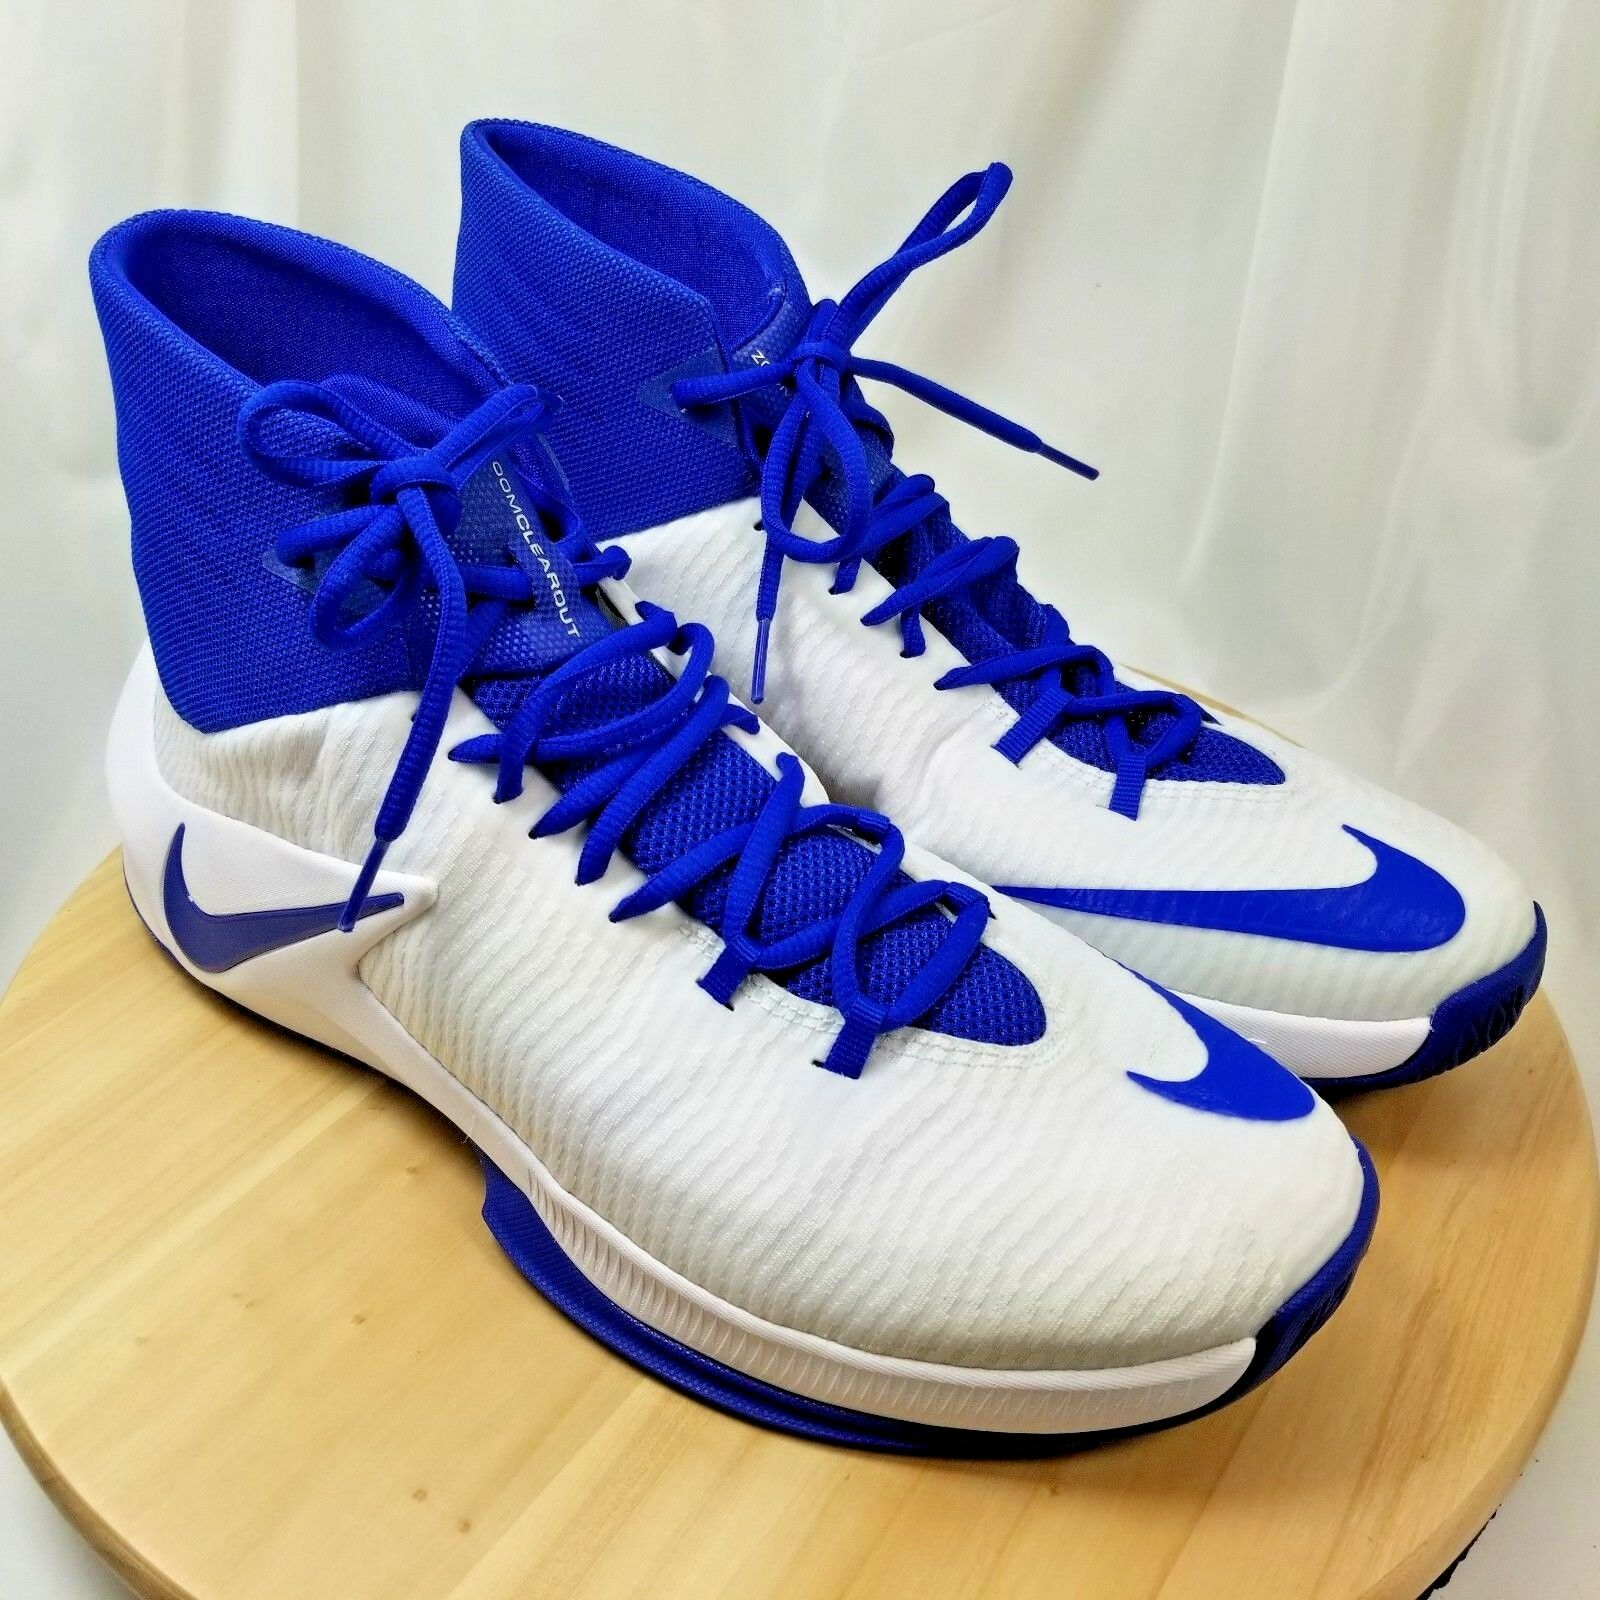 Nike Zoom Clearout White / Blue HighTop US:12/UK:11